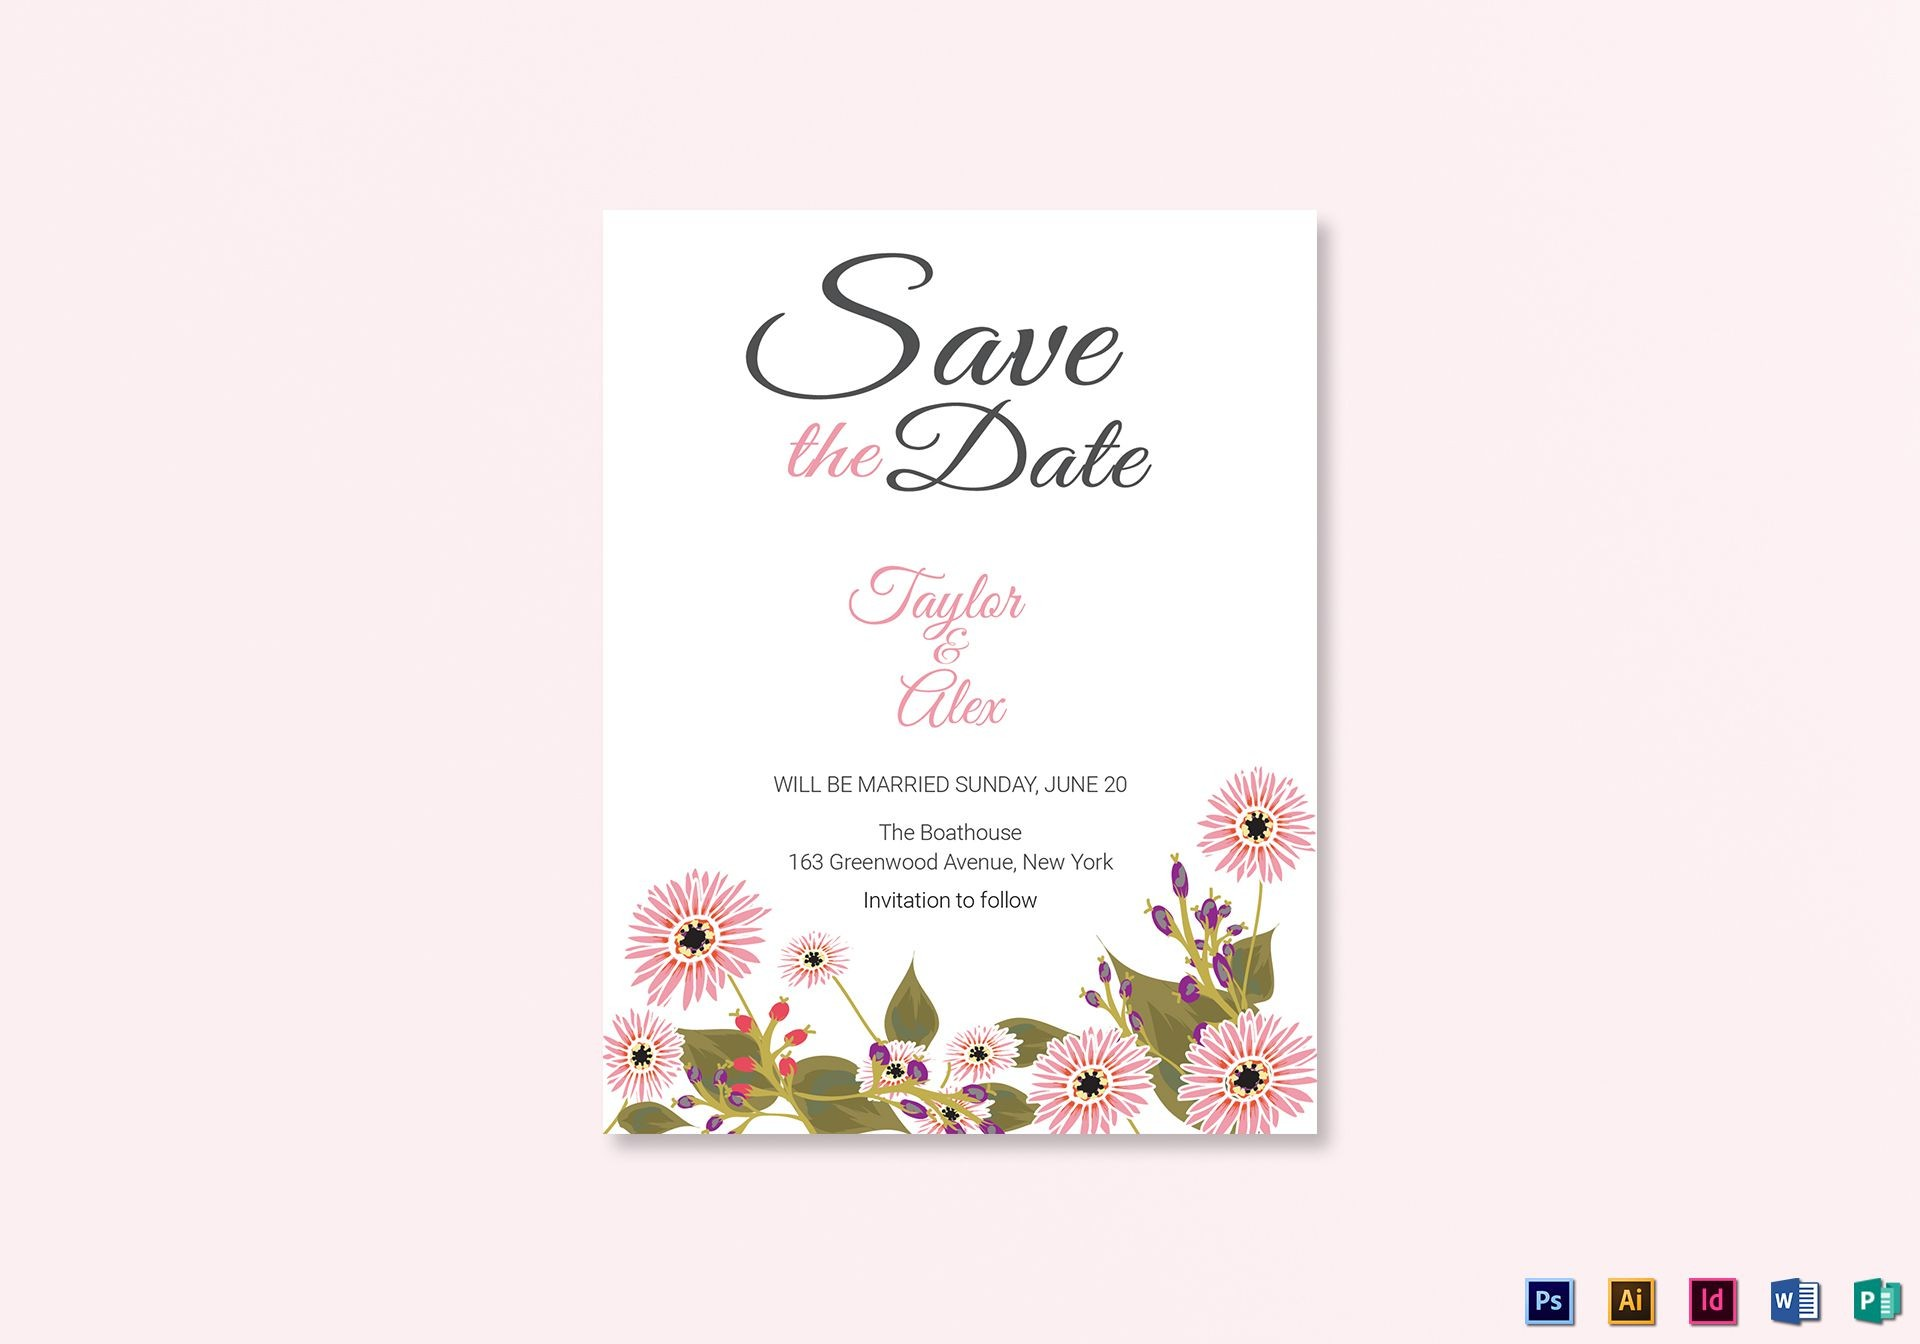 007 Fantastic Save The Date Word Template Photo  Free Birthday For Microsoft Postcard Flyer1920